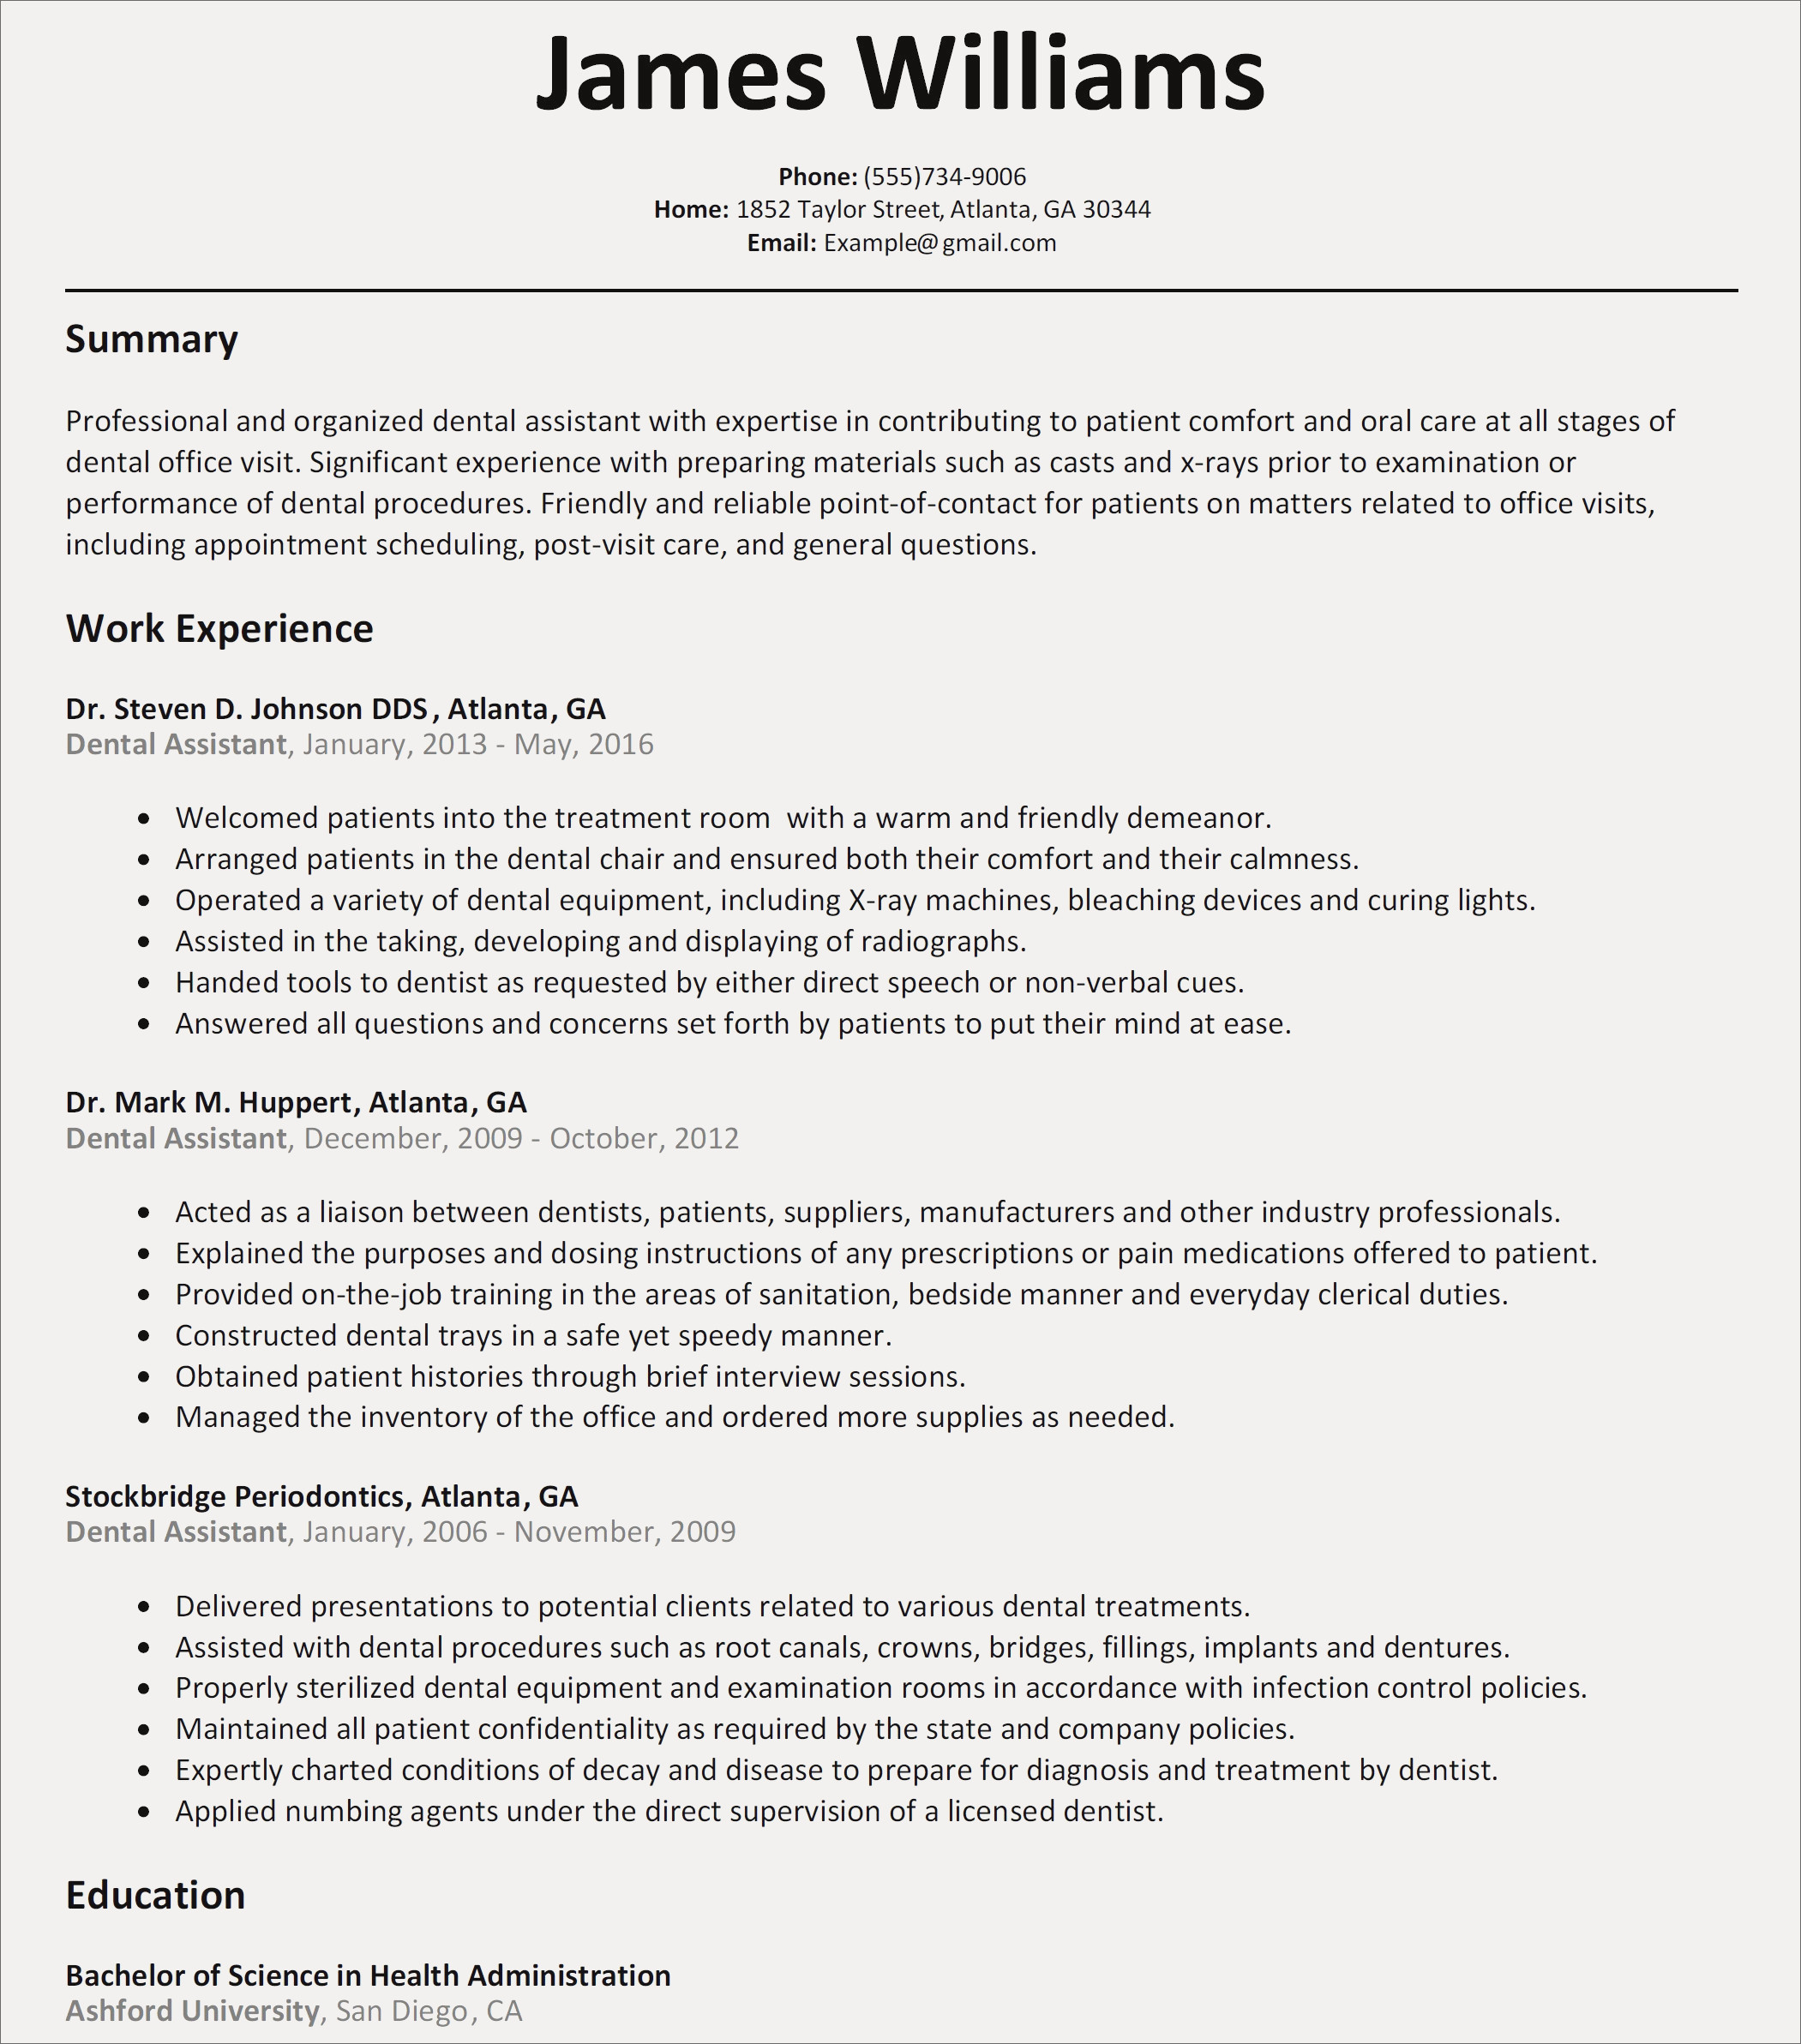 Social Work Resume Sample - social Work Resume Sample Awesome Resume for Employment Examples